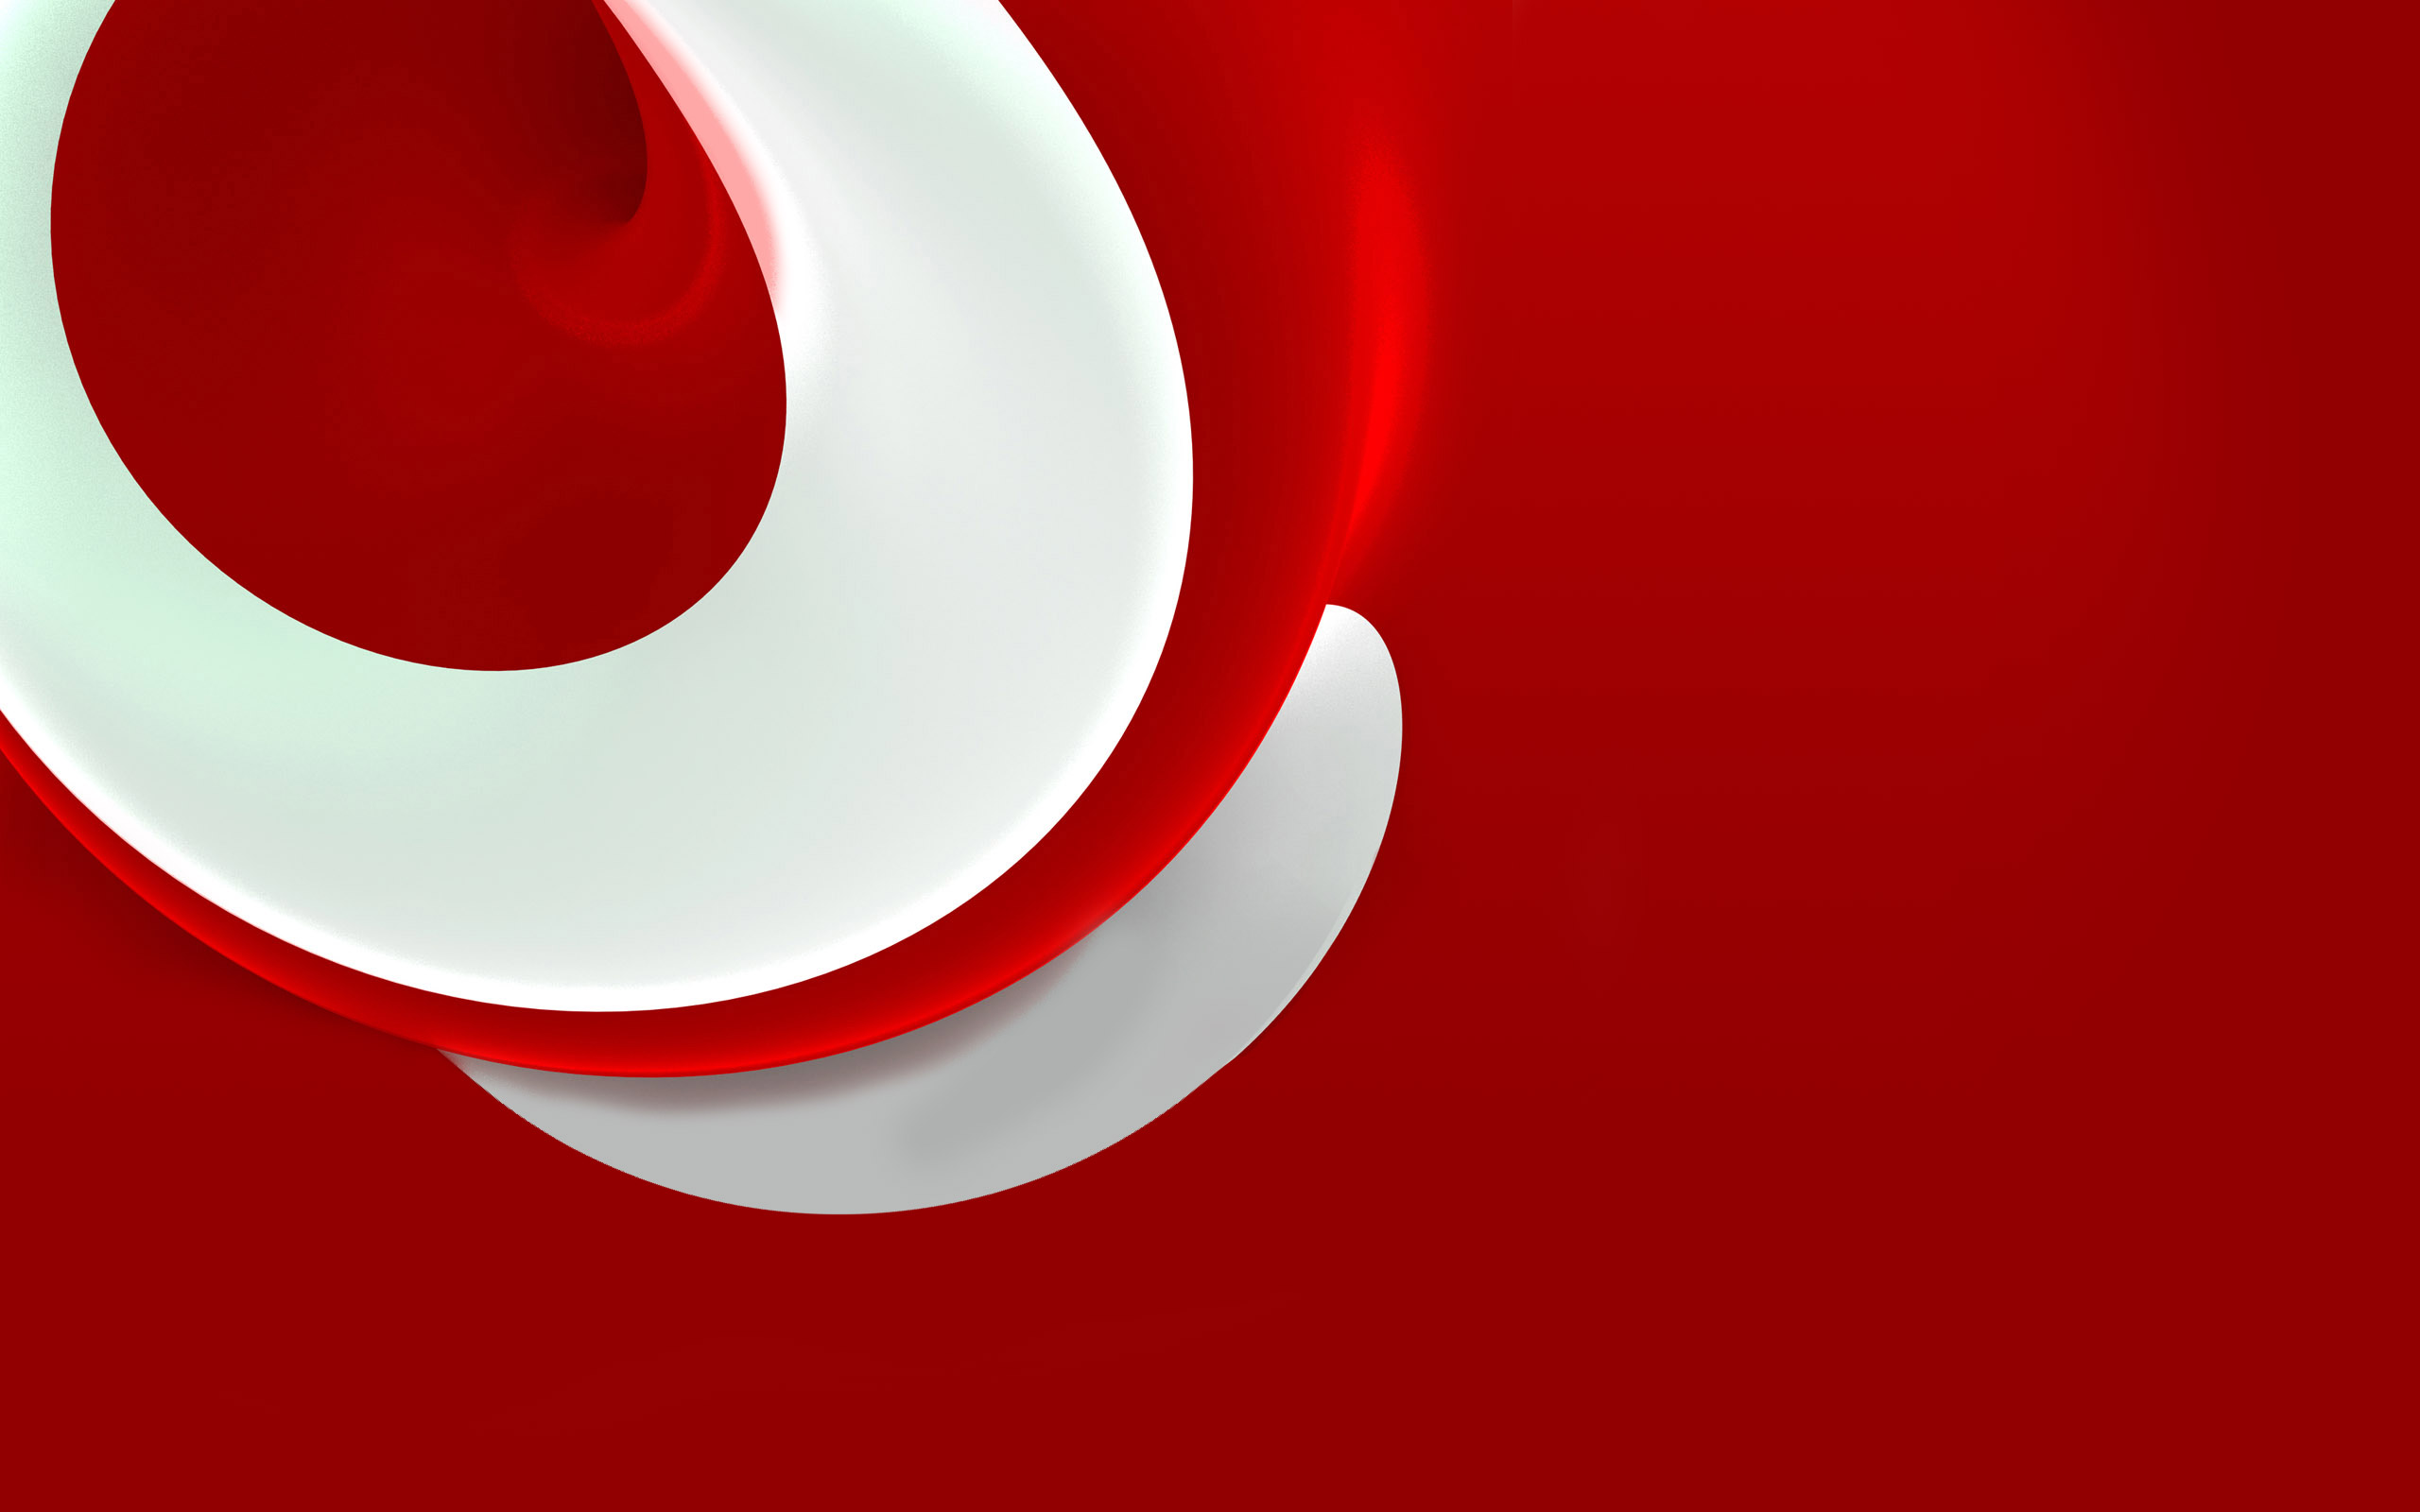 Red Wallpaper Photos White And 2560x1600